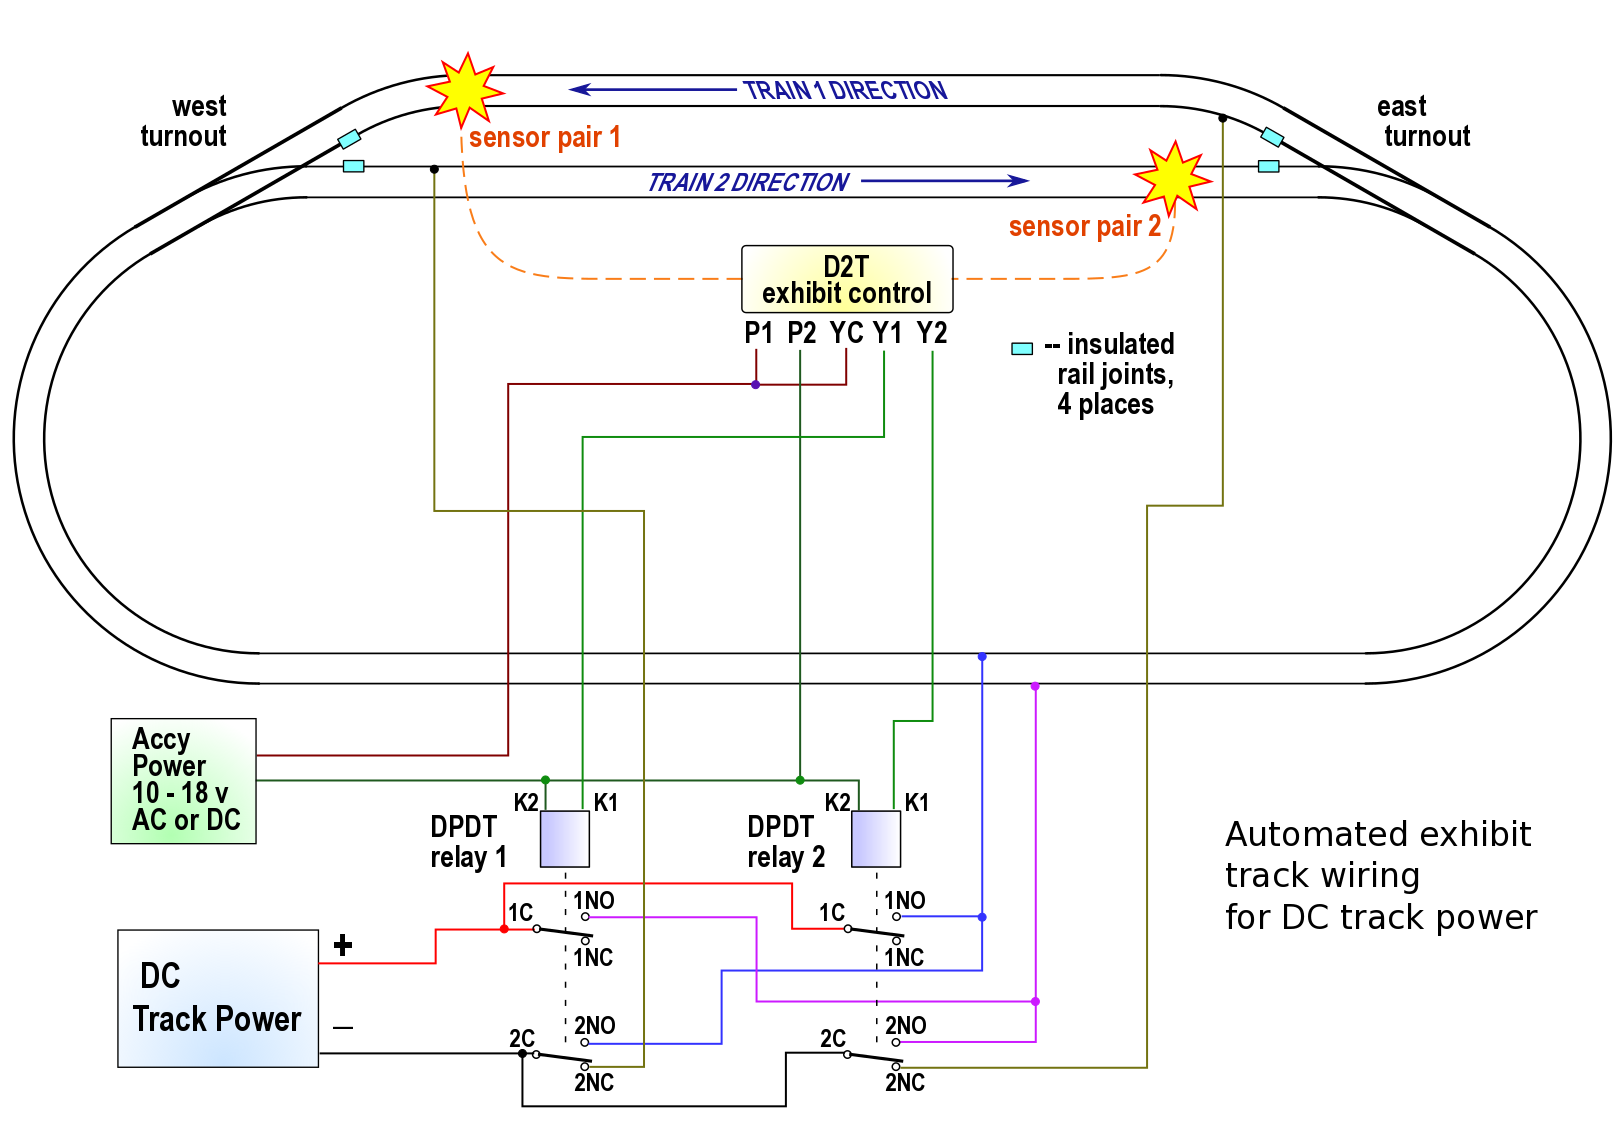 hight resolution of dc wiring for ho track schema wiring diagram ho track wiring details